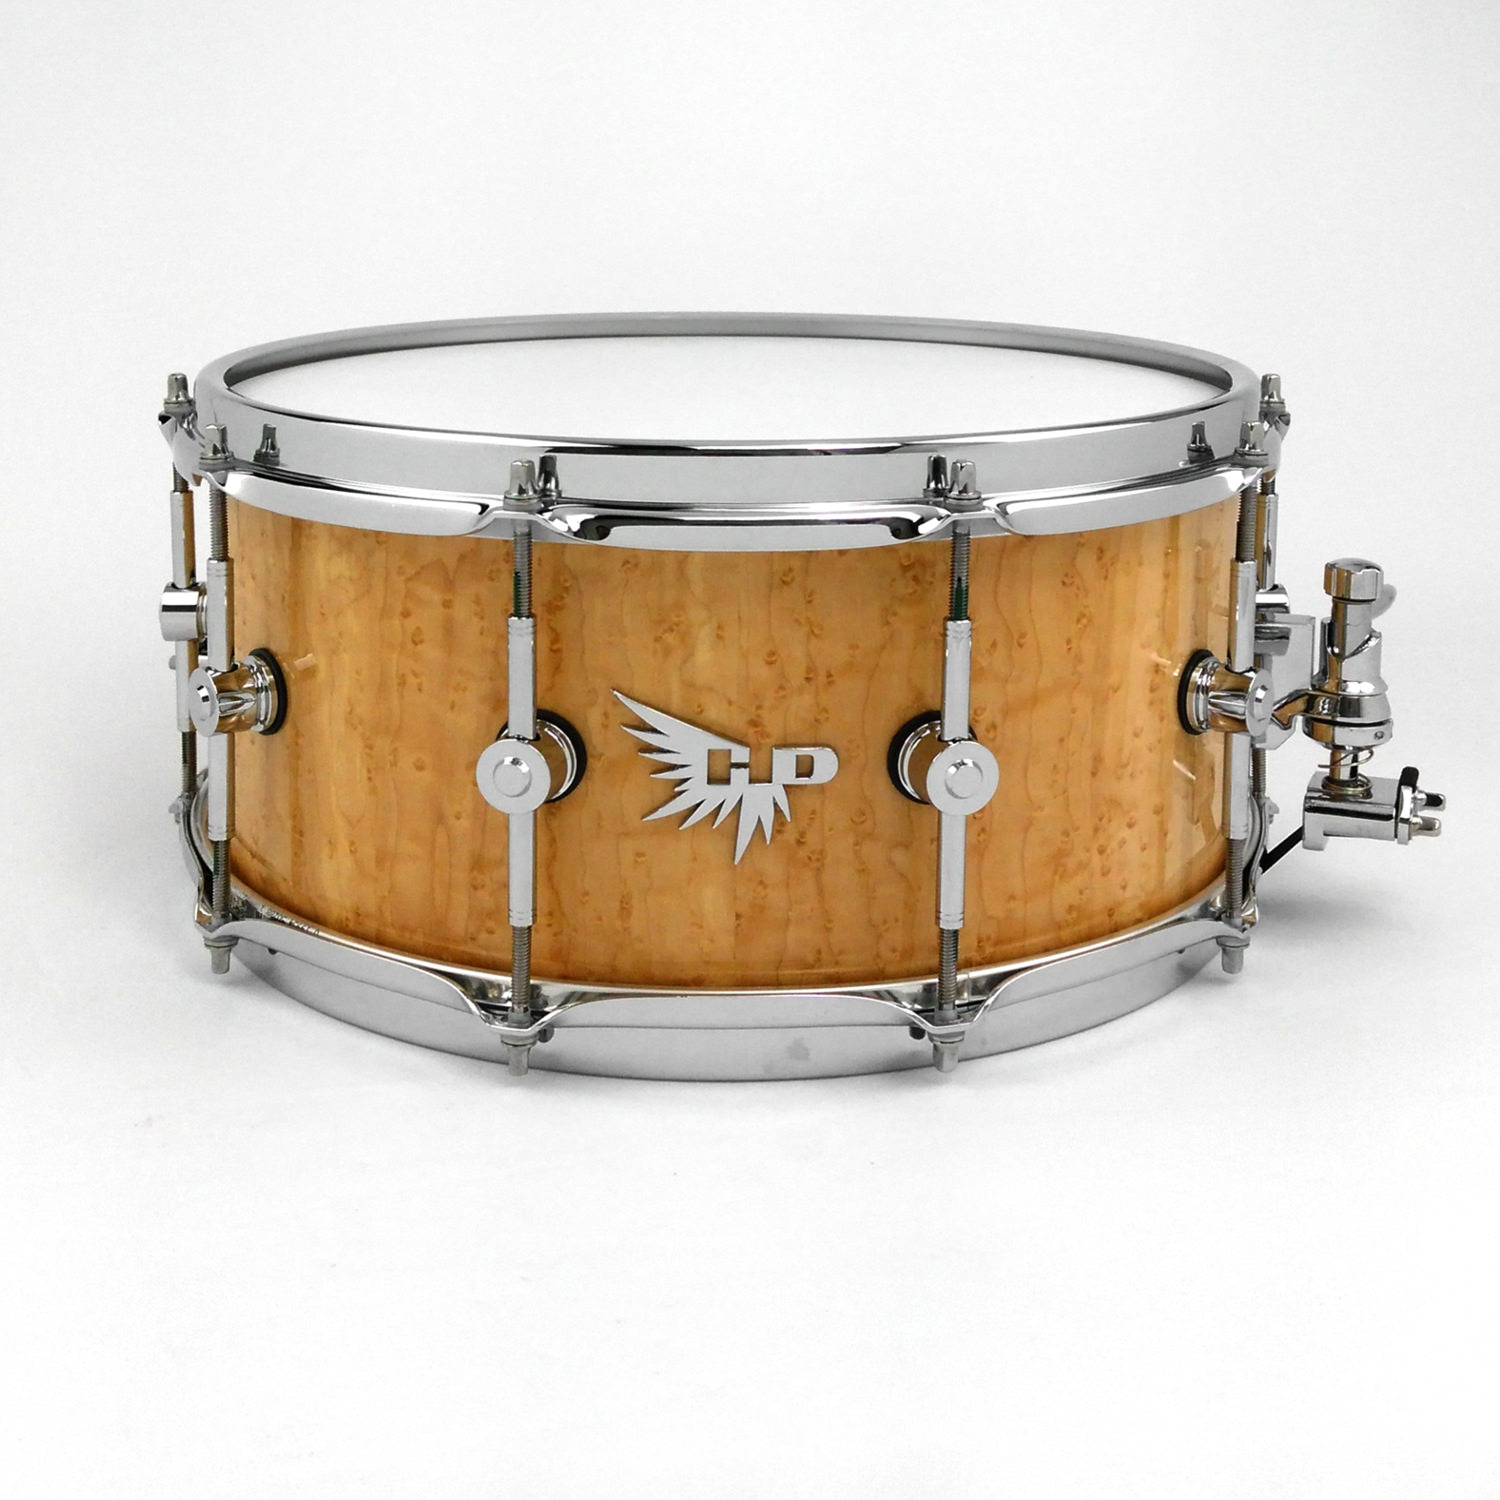 Birdseye Maple Best Snare Drum Hendrix Drums Stave